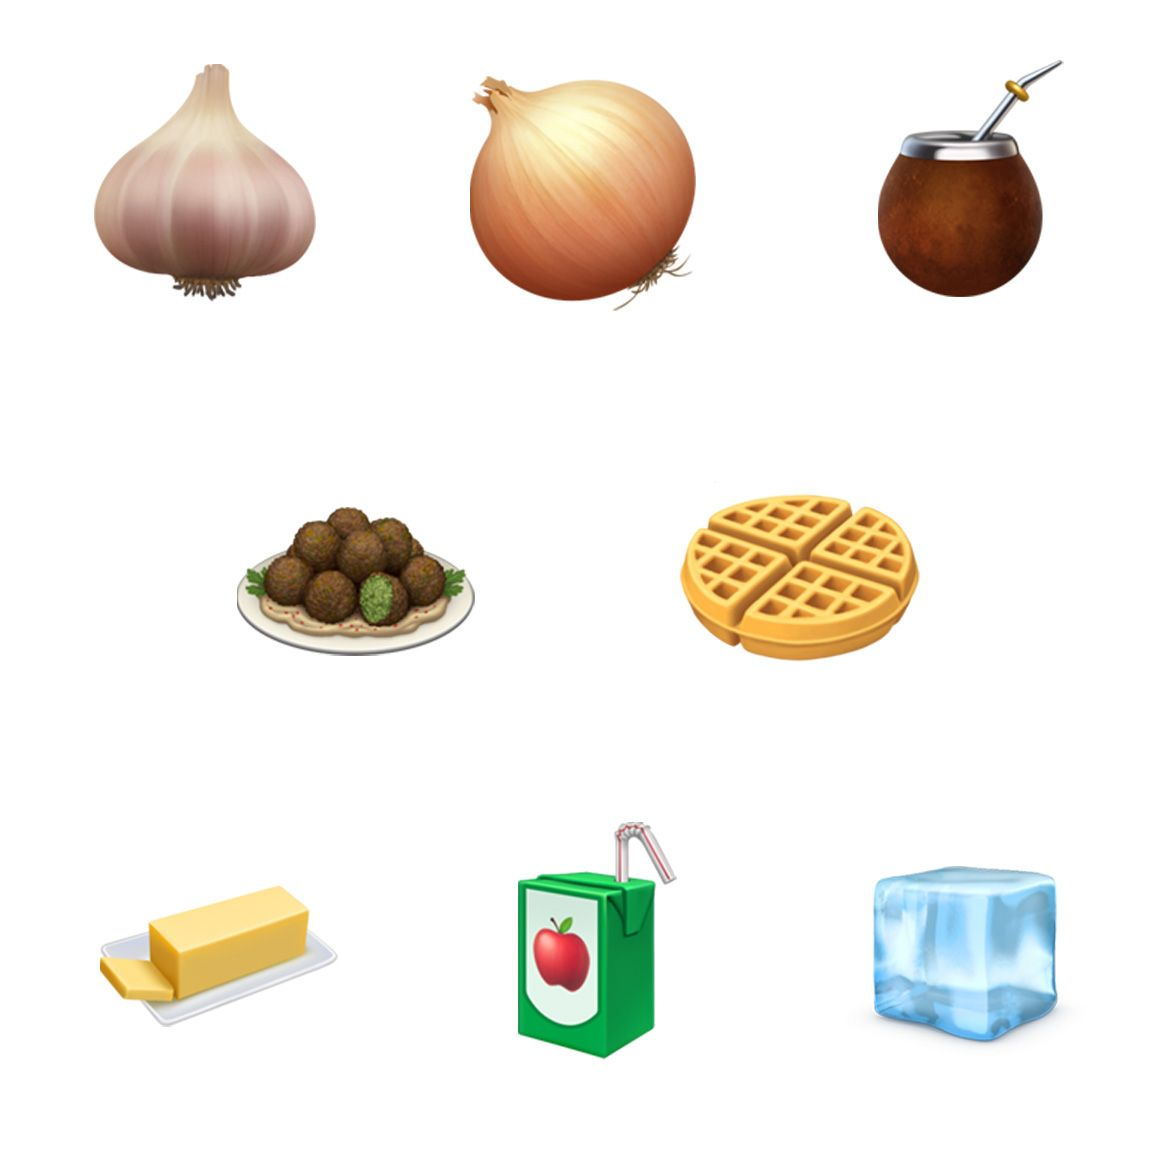 Emojipedia-Apple-iOS-13.2-Emoji-Changelog-Food